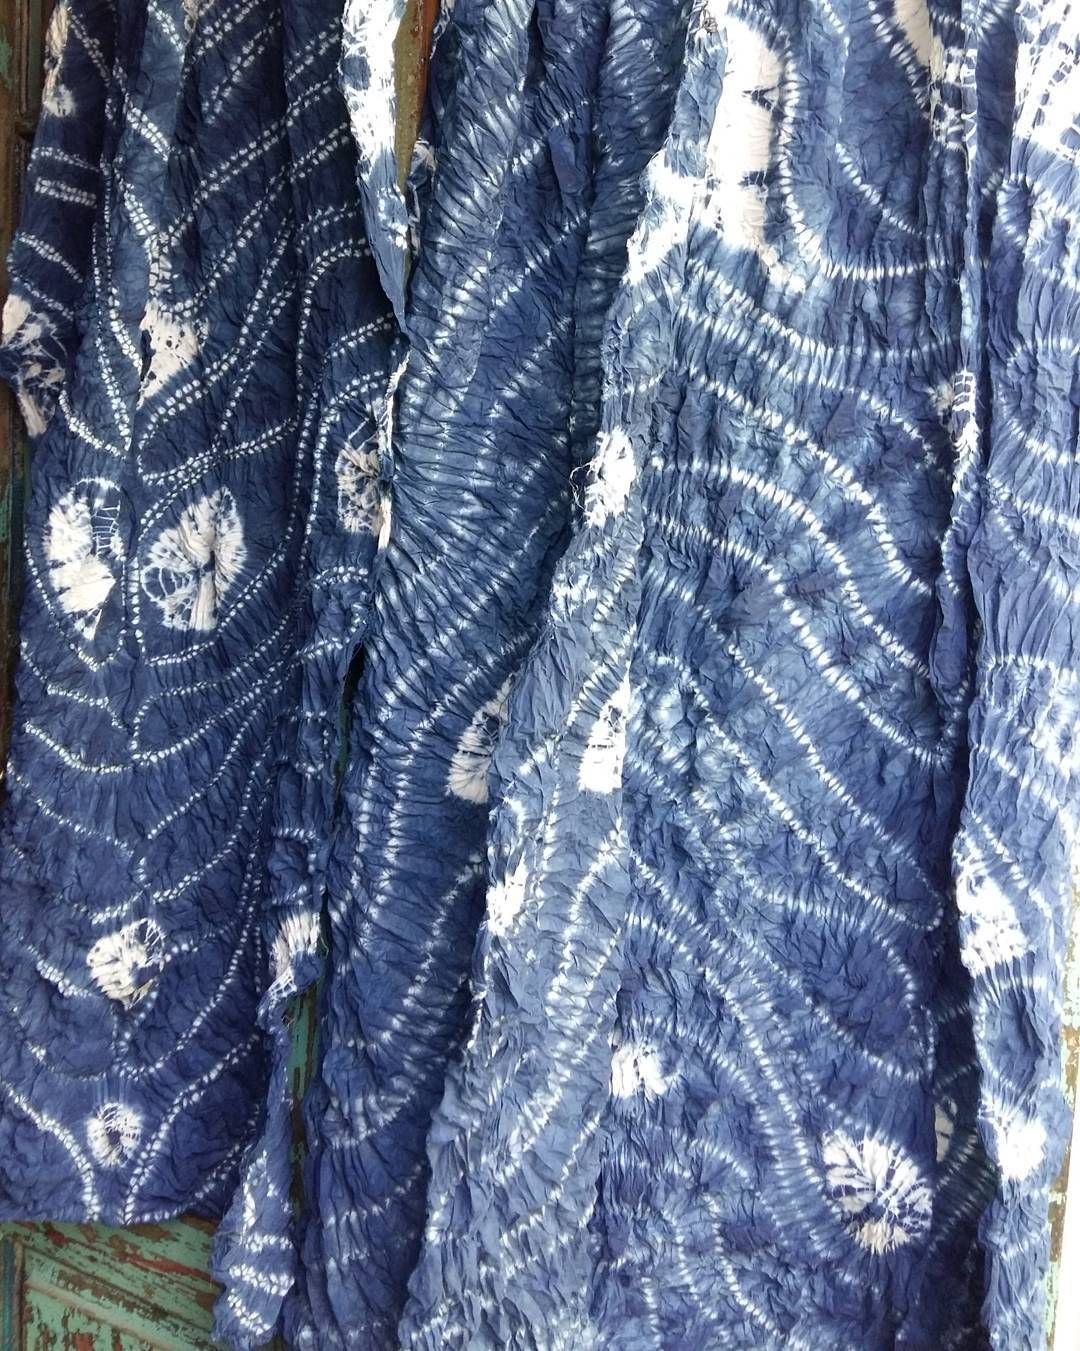 Indigo Shibori Dye Ori Nui Pattern Fabric - Year of Clean Water